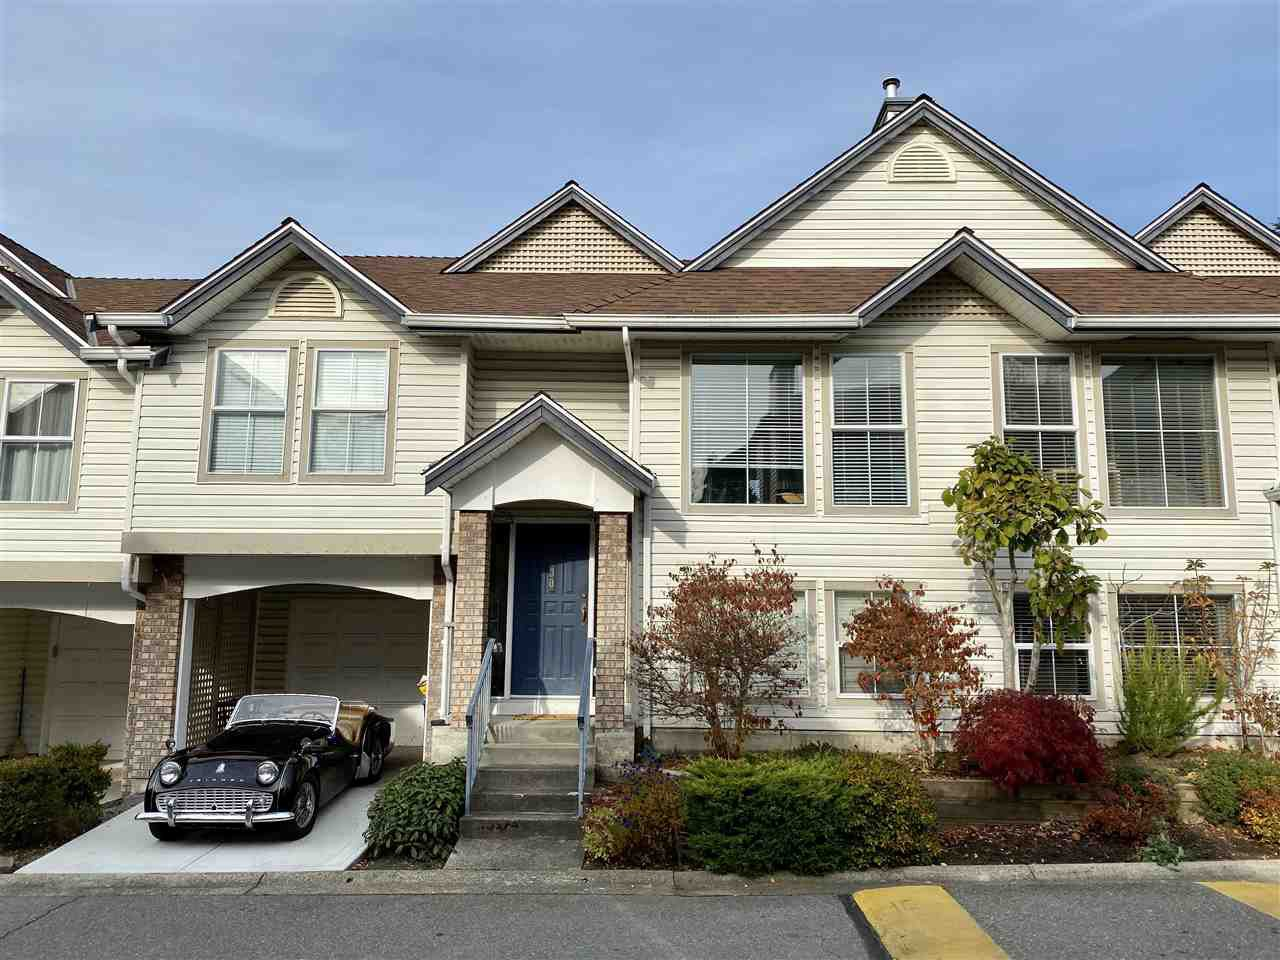 """Main Photo: 30 8716 WALNUT GROVE Drive in Langley: Walnut Grove Townhouse for sale in """"Willow Arbour"""" : MLS®# R2463984"""